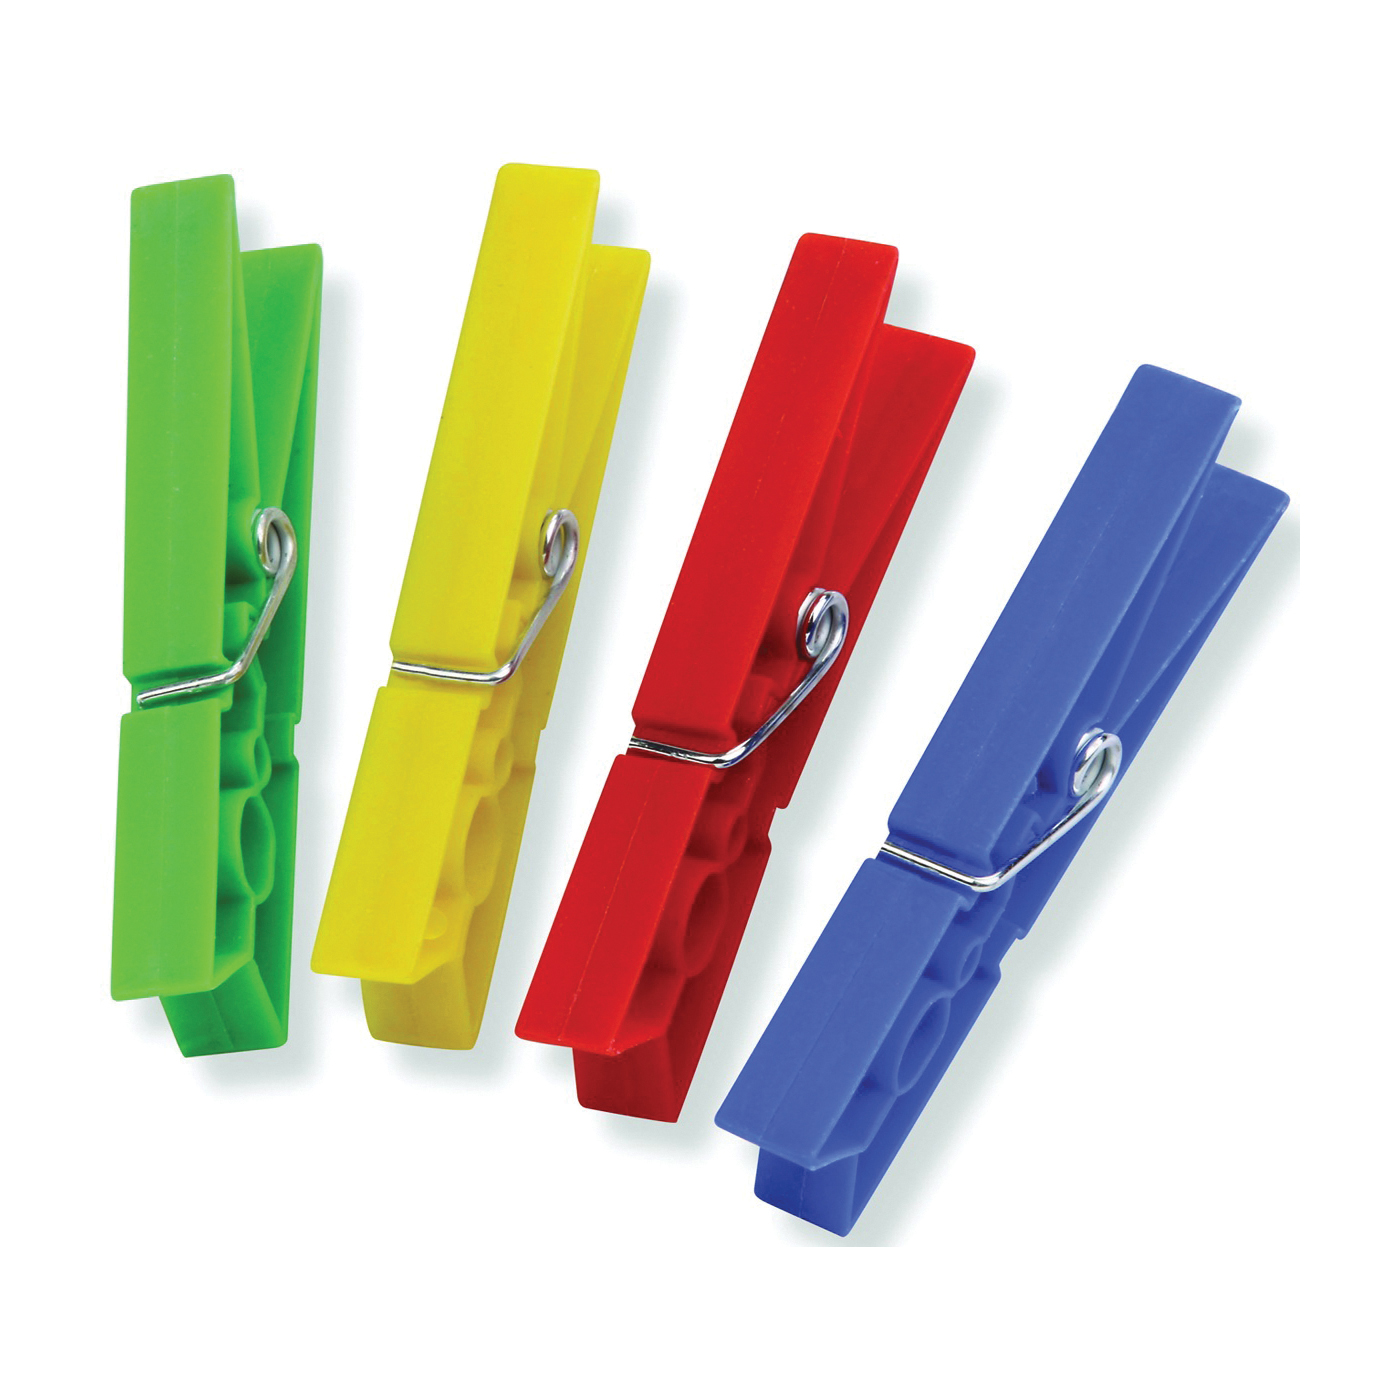 Picture of Honey-Can-Do DRY-01410 Classic Clothespin, 0.79 in W, 3.31 in L, Plastic, Blue/Green/Red/Yellow